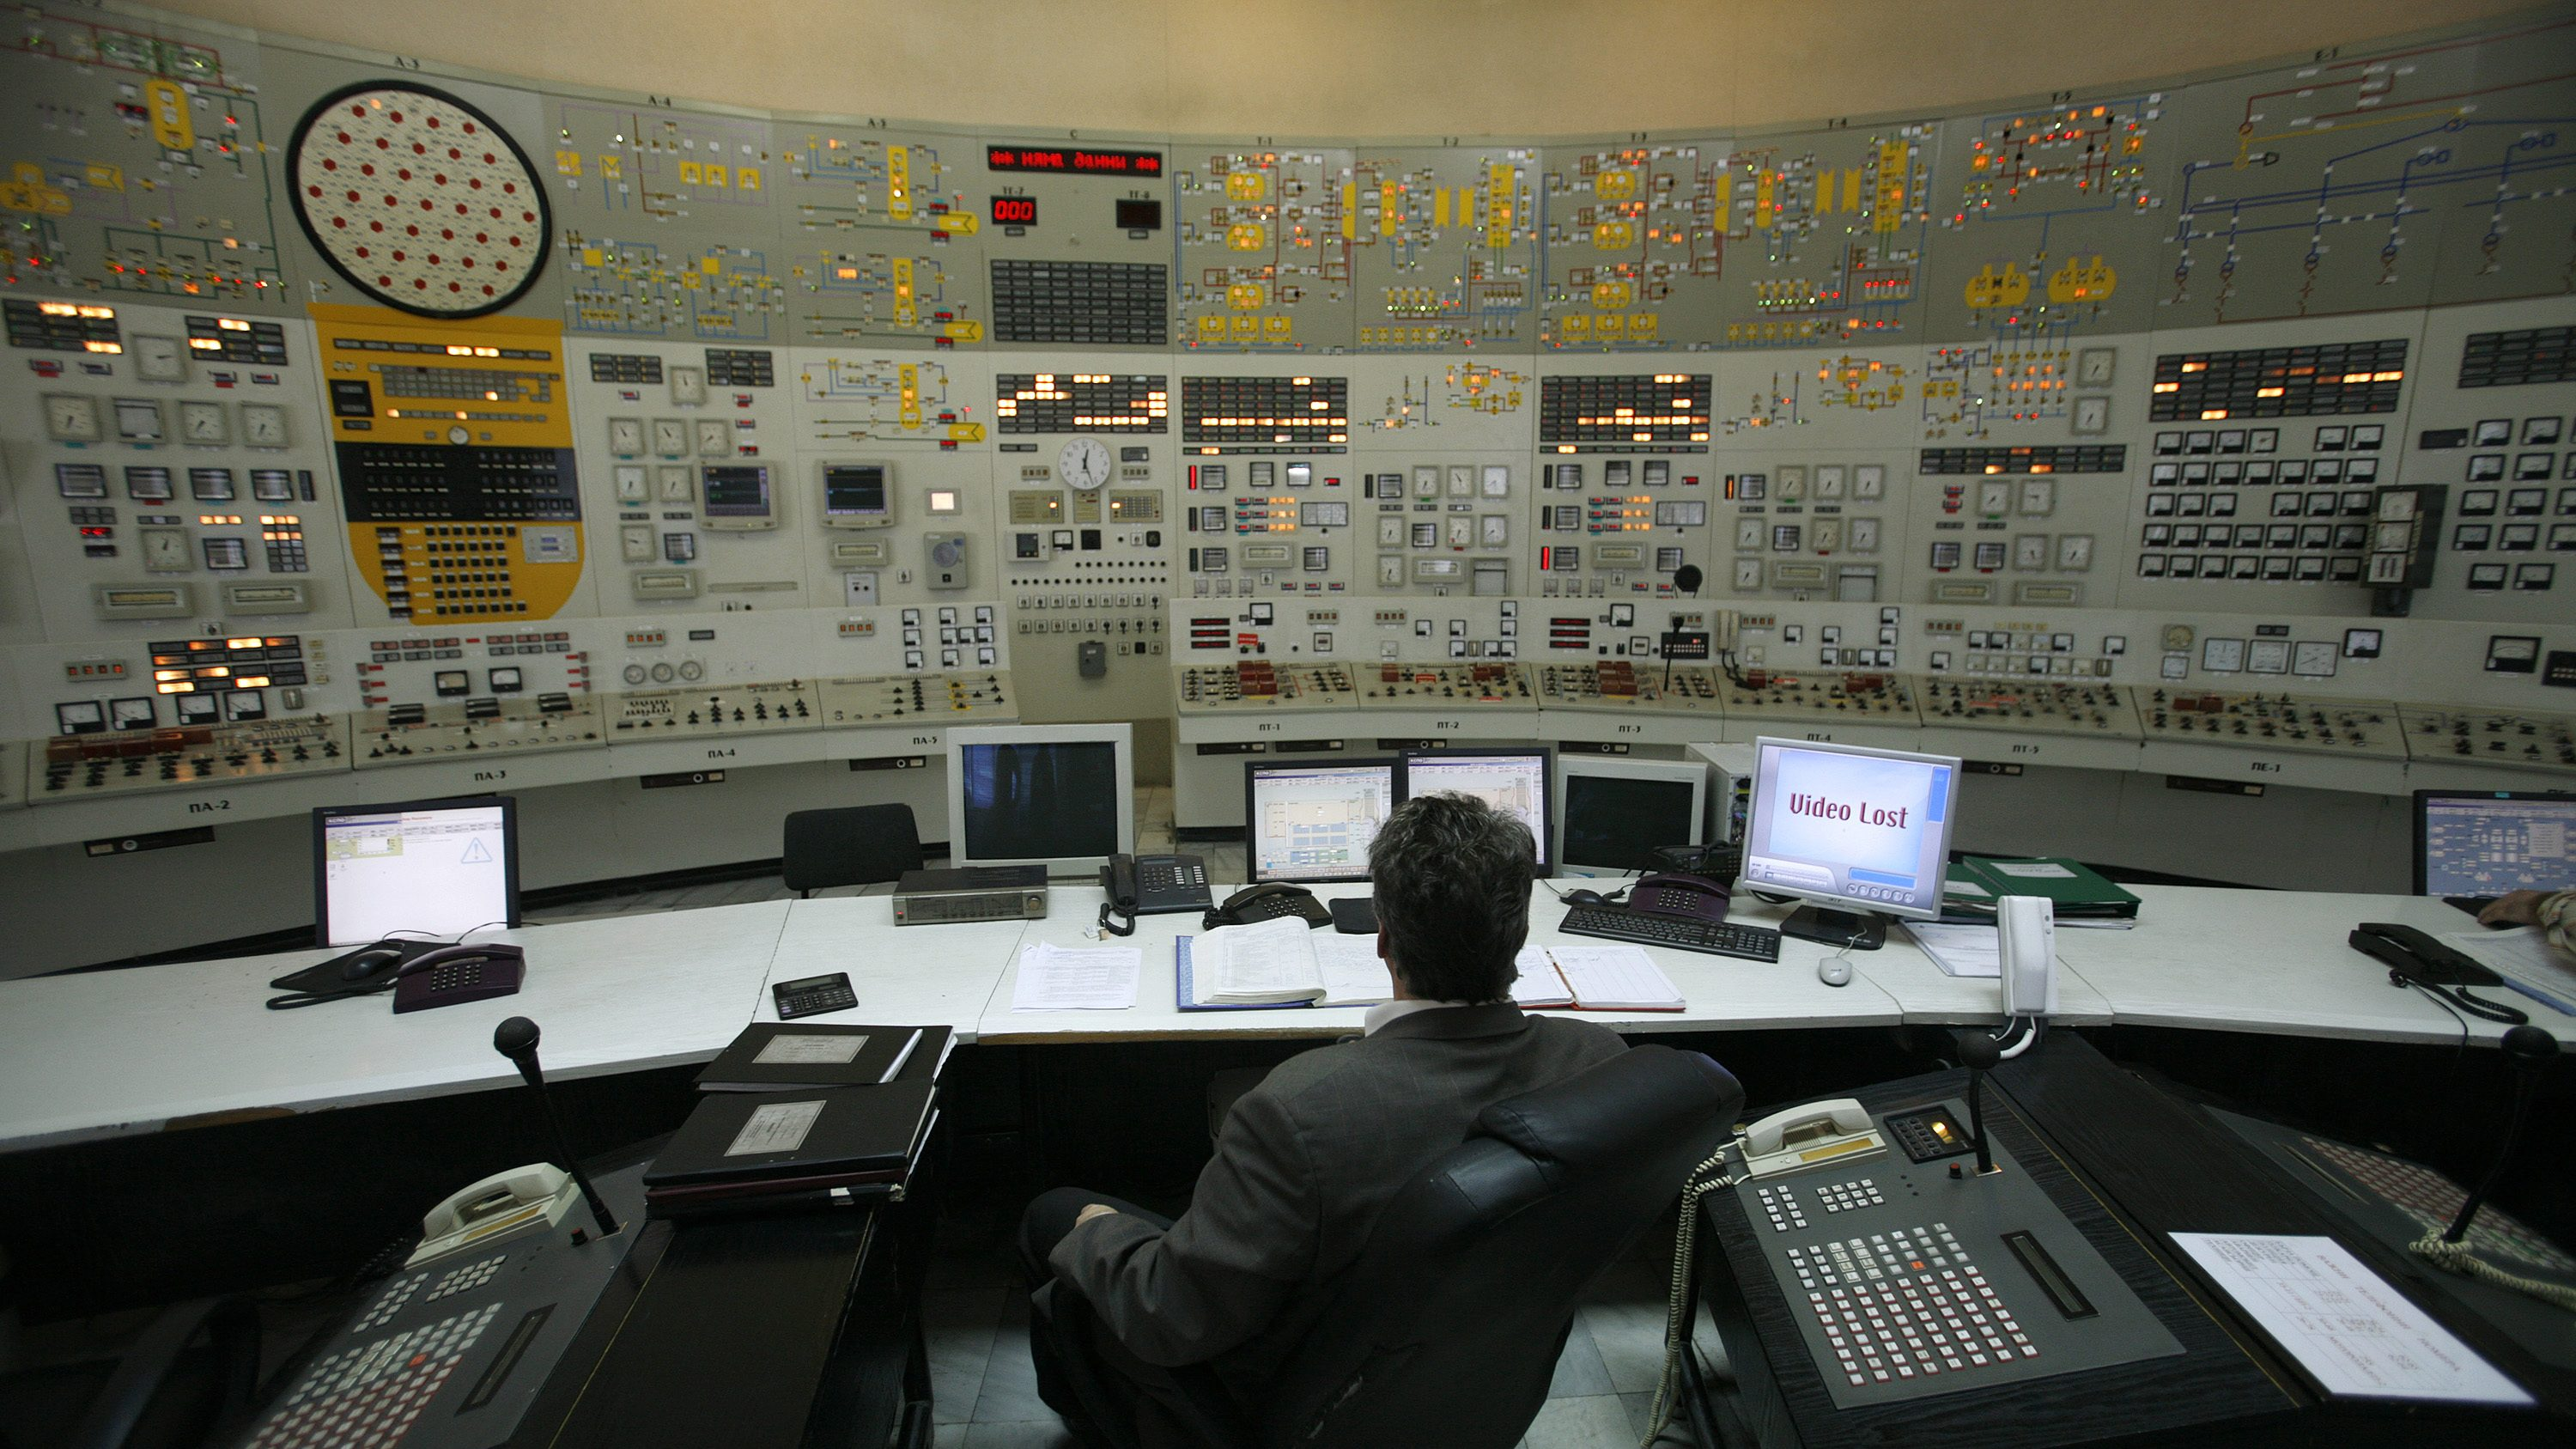 An operator carries out technical tests for a possible restart of two Soviet-era nuclear reactors at a control centre in the nuclear power plant of Kozloduy, some 200 km (124 miles) north of Sofia, January 27, 2009. The Socialist-led government says the reactors at Bulgaria's sole nuclear power plant were unfairly deemed dangerous by the EU and has called on Brussels to compensate Bulgaria for the double blow of the gas row and the global economic slowdown, by allowing a restart.